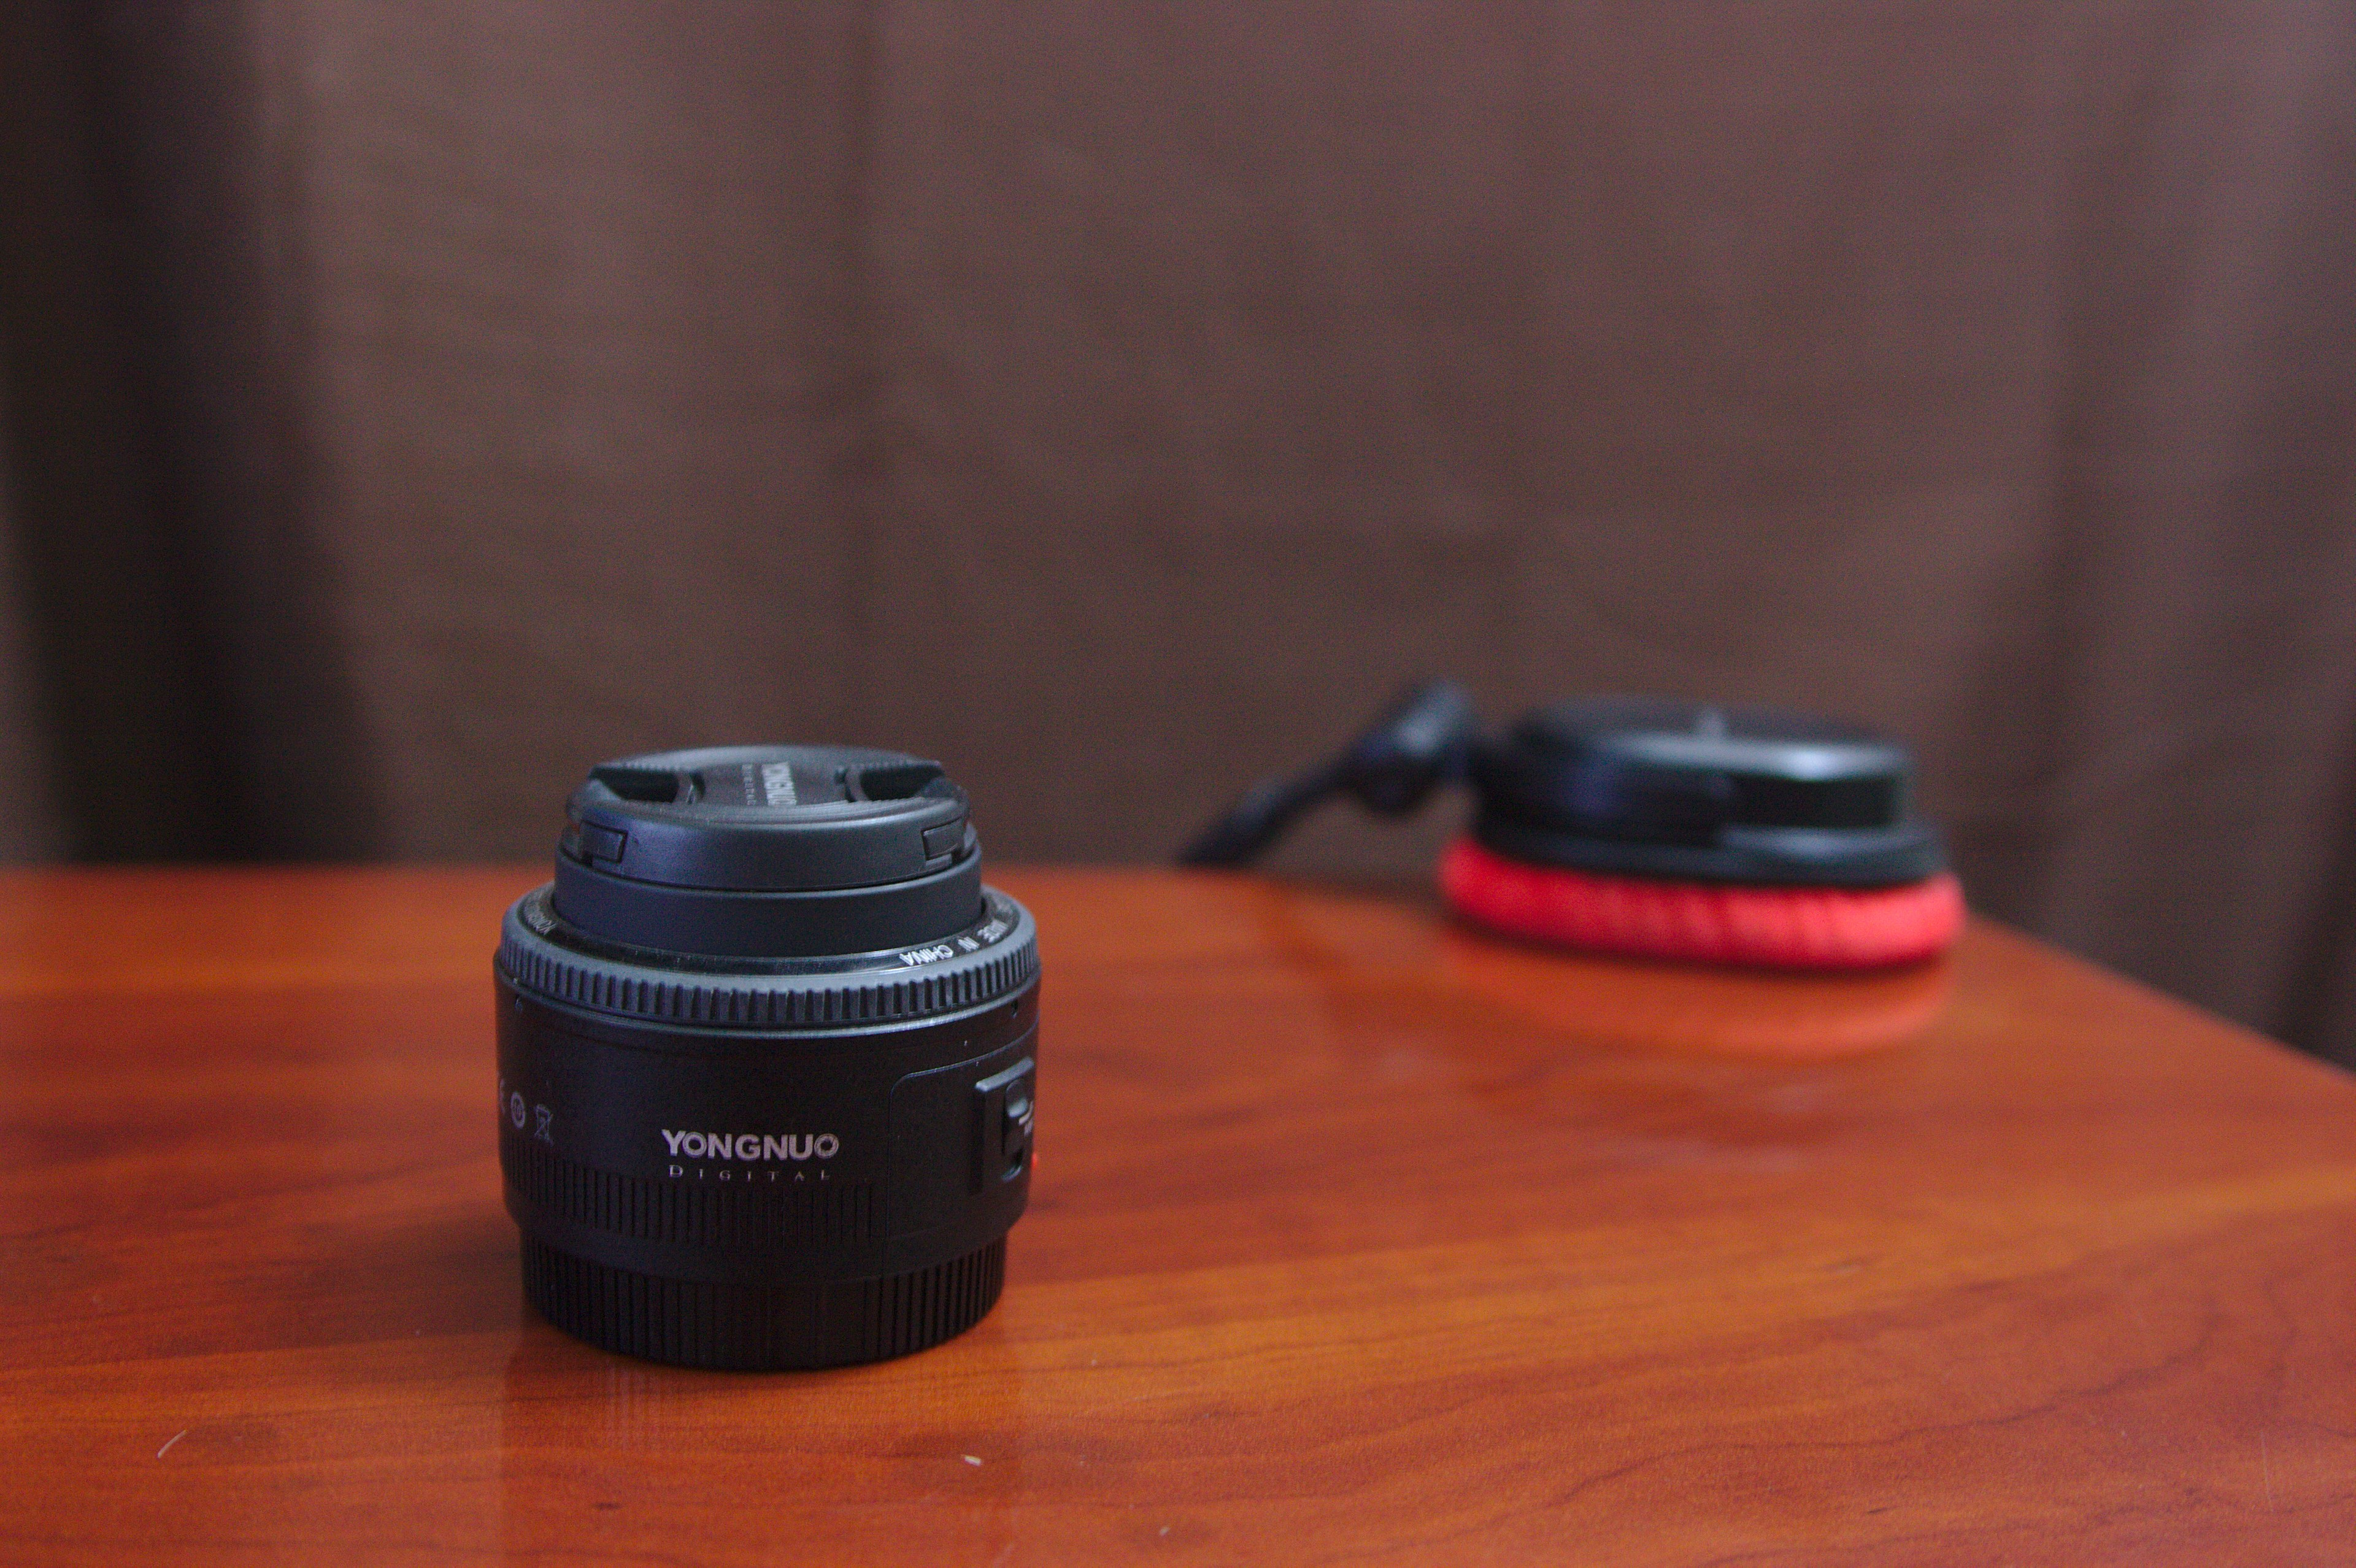 Canon 450D / XSi at ISO 800